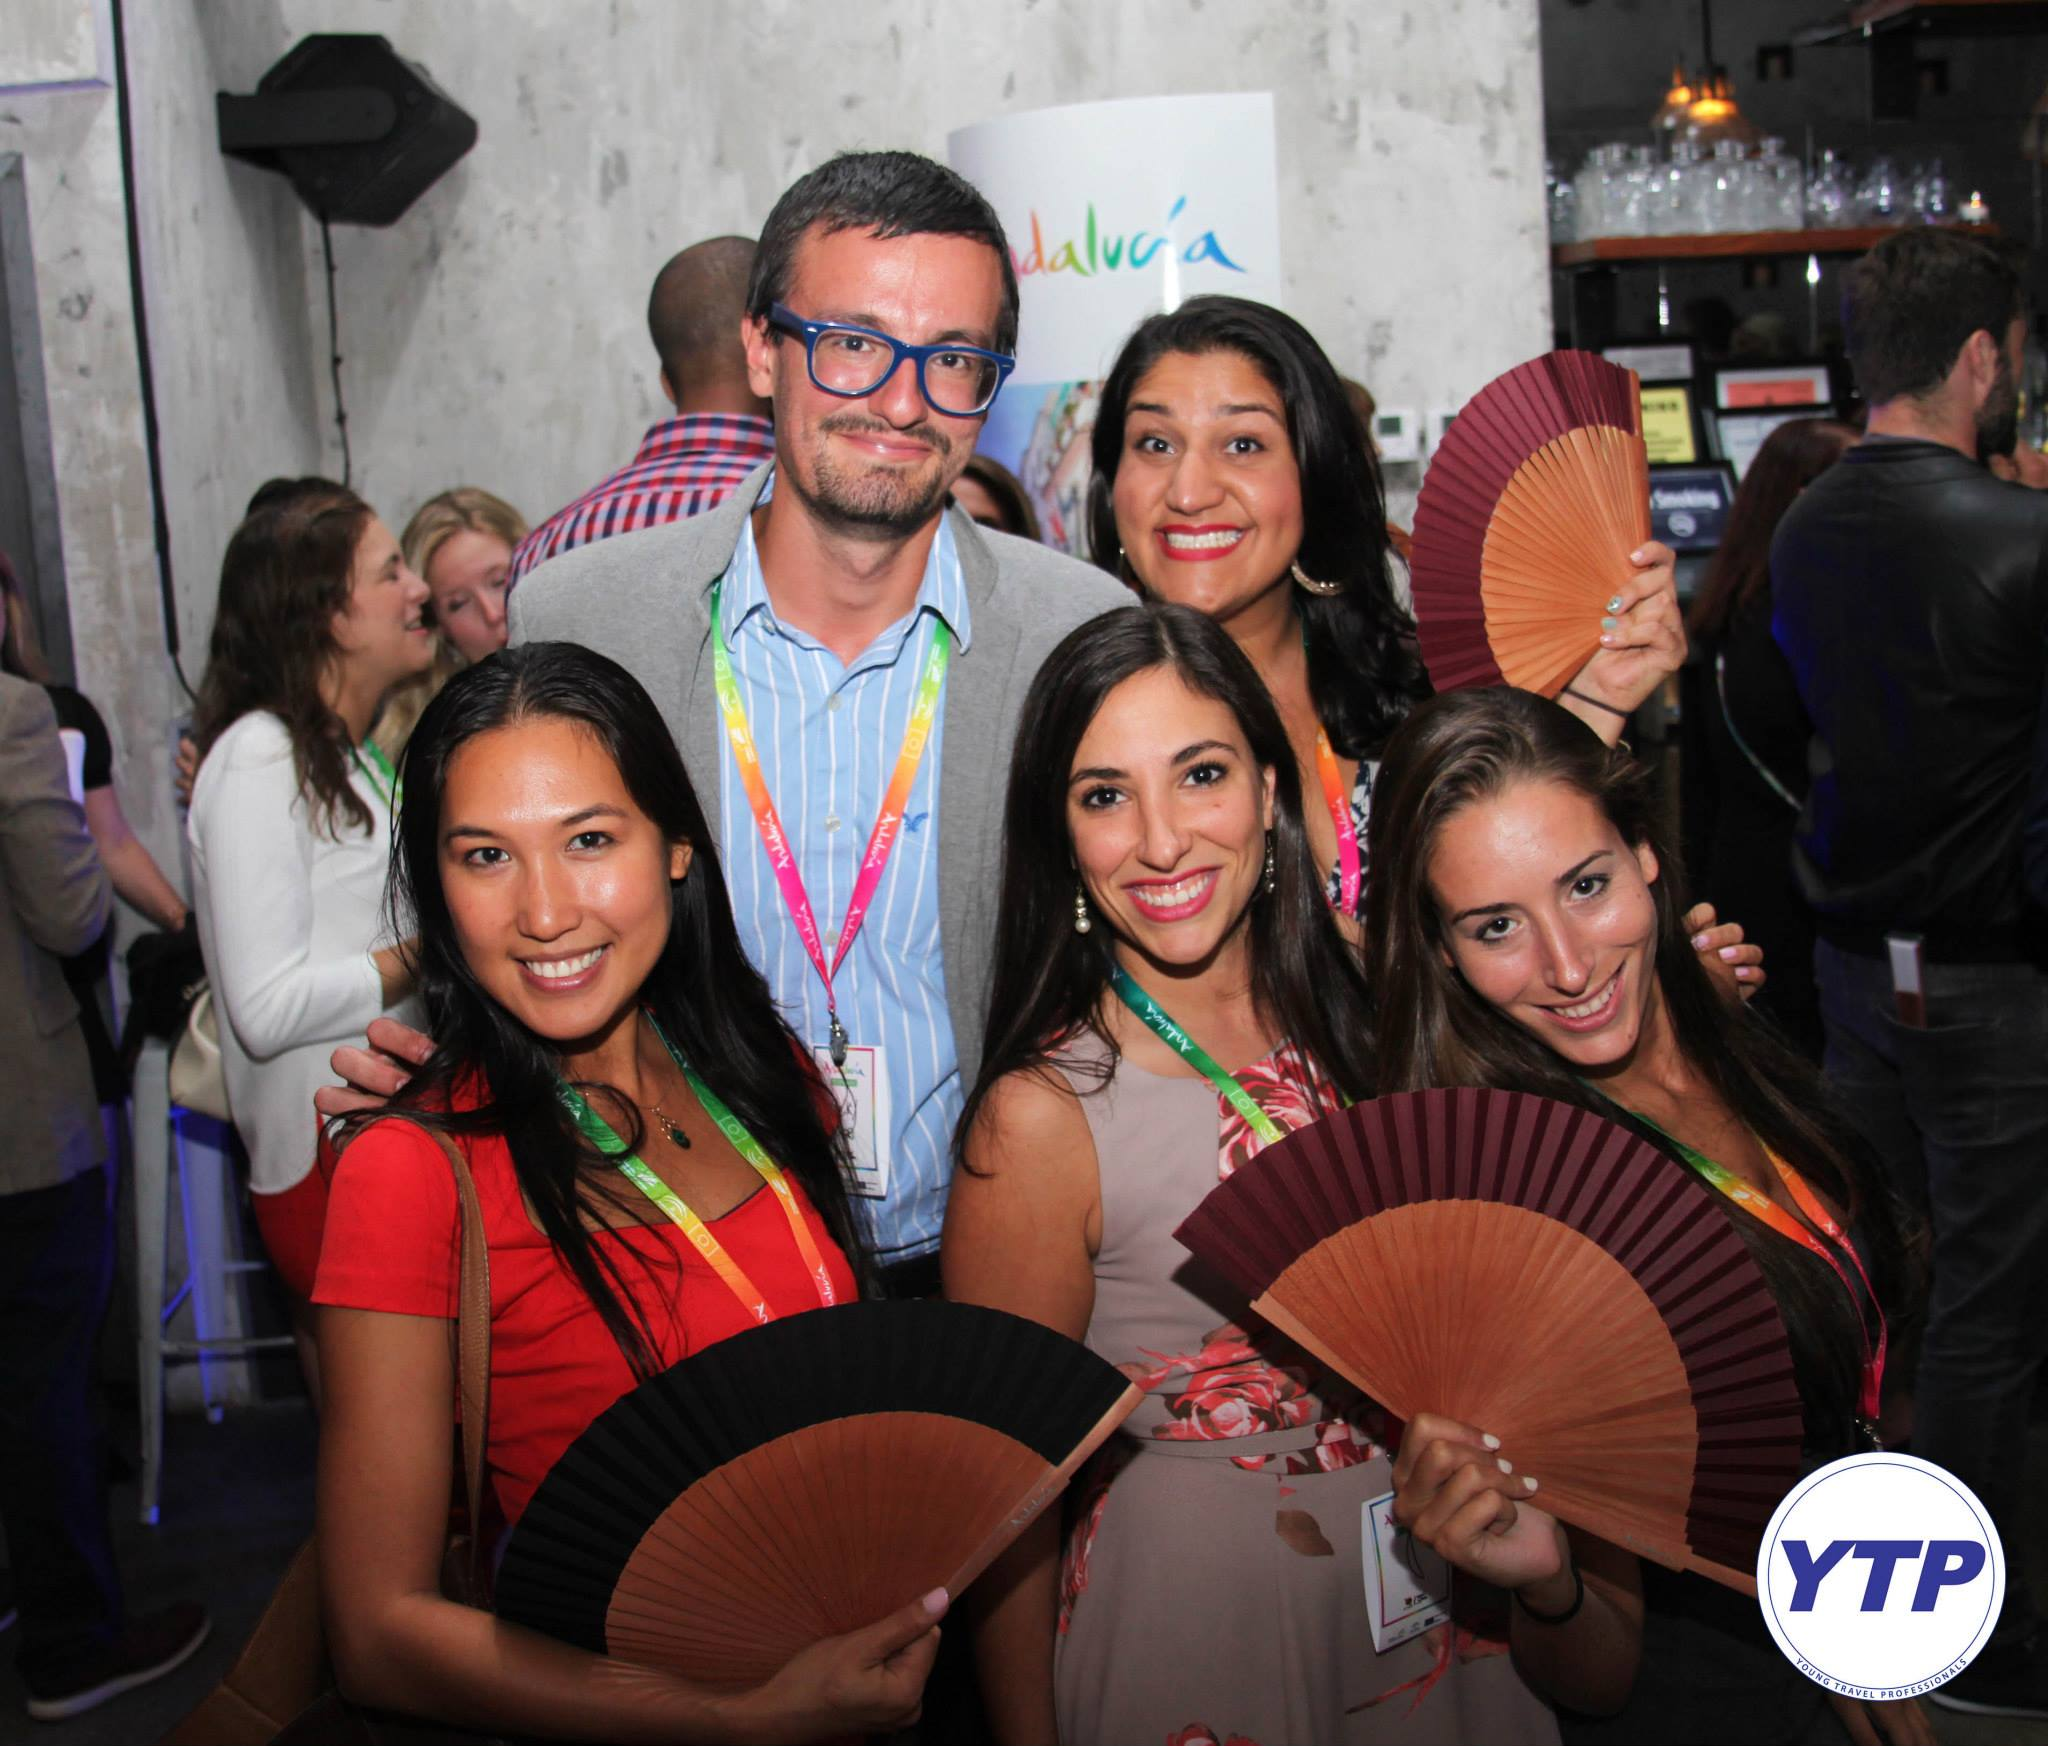 Back row: L to R - Nick Dragone & Rani Cheema; Front row: L to R - Me, Marisa Costa (the Director of the  NEXT program ) and Nicole Teitler - the first graduating class of the NEXT Travel Agent Training Program at a  Young Travel Professionals  networking event.